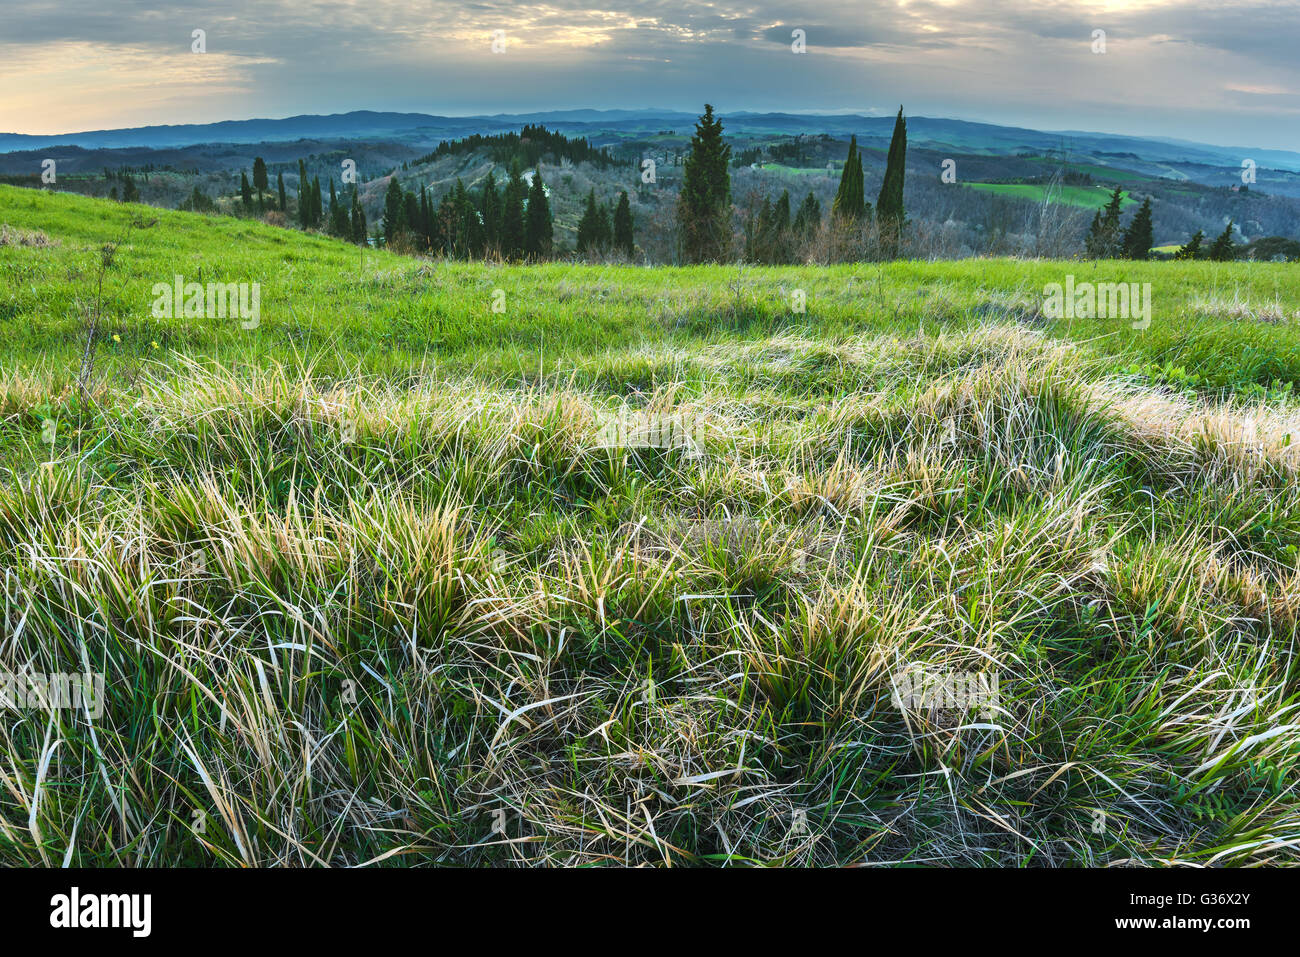 Enchanted landscape with overcast sky - Stock Image